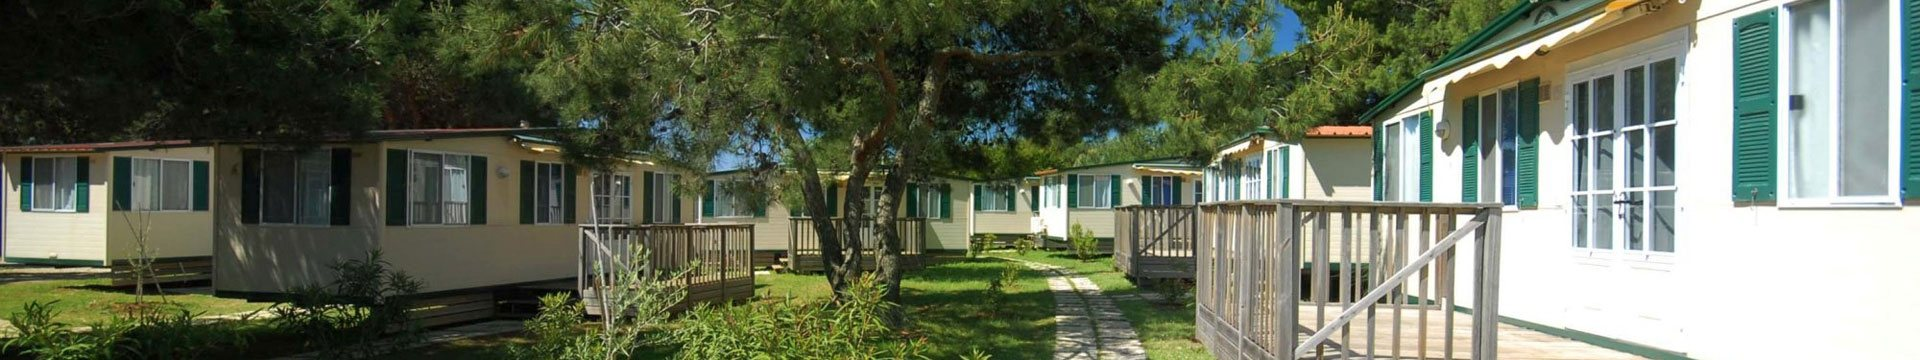 Mobile homes in Pula | AdriaCamps